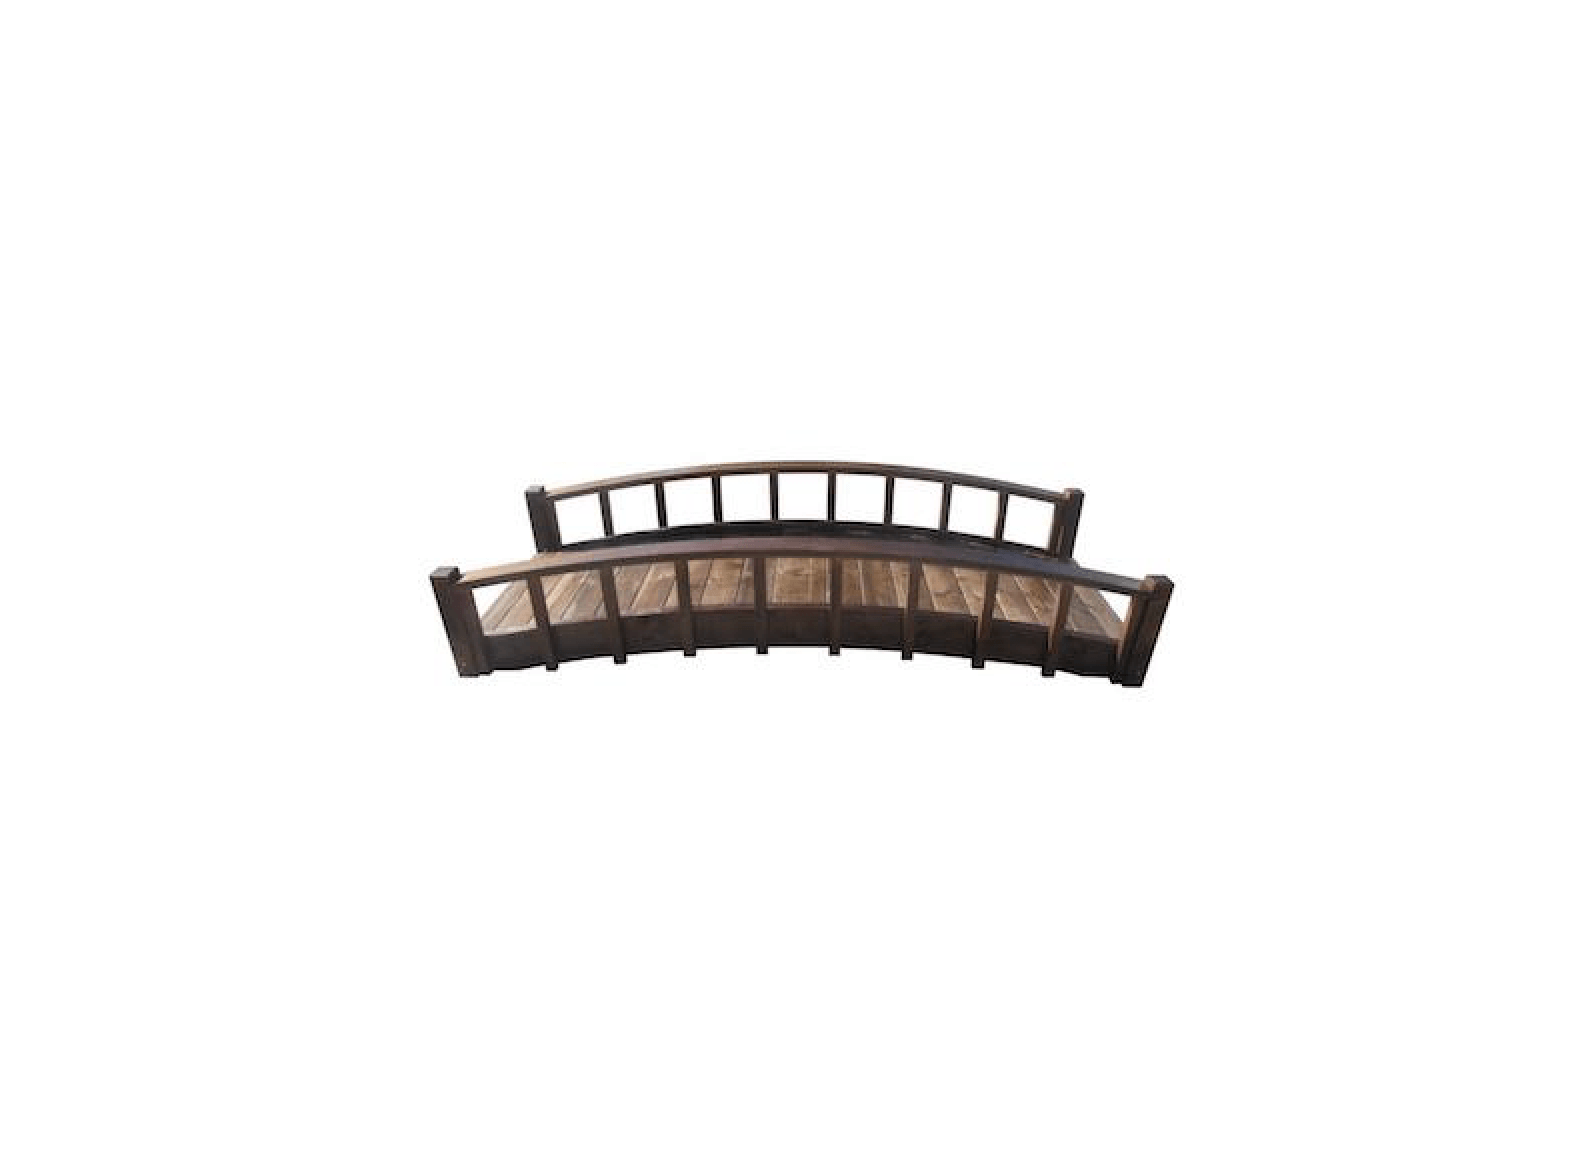 8 Ft Japanese Wood Garden Moon Bridge With Arched